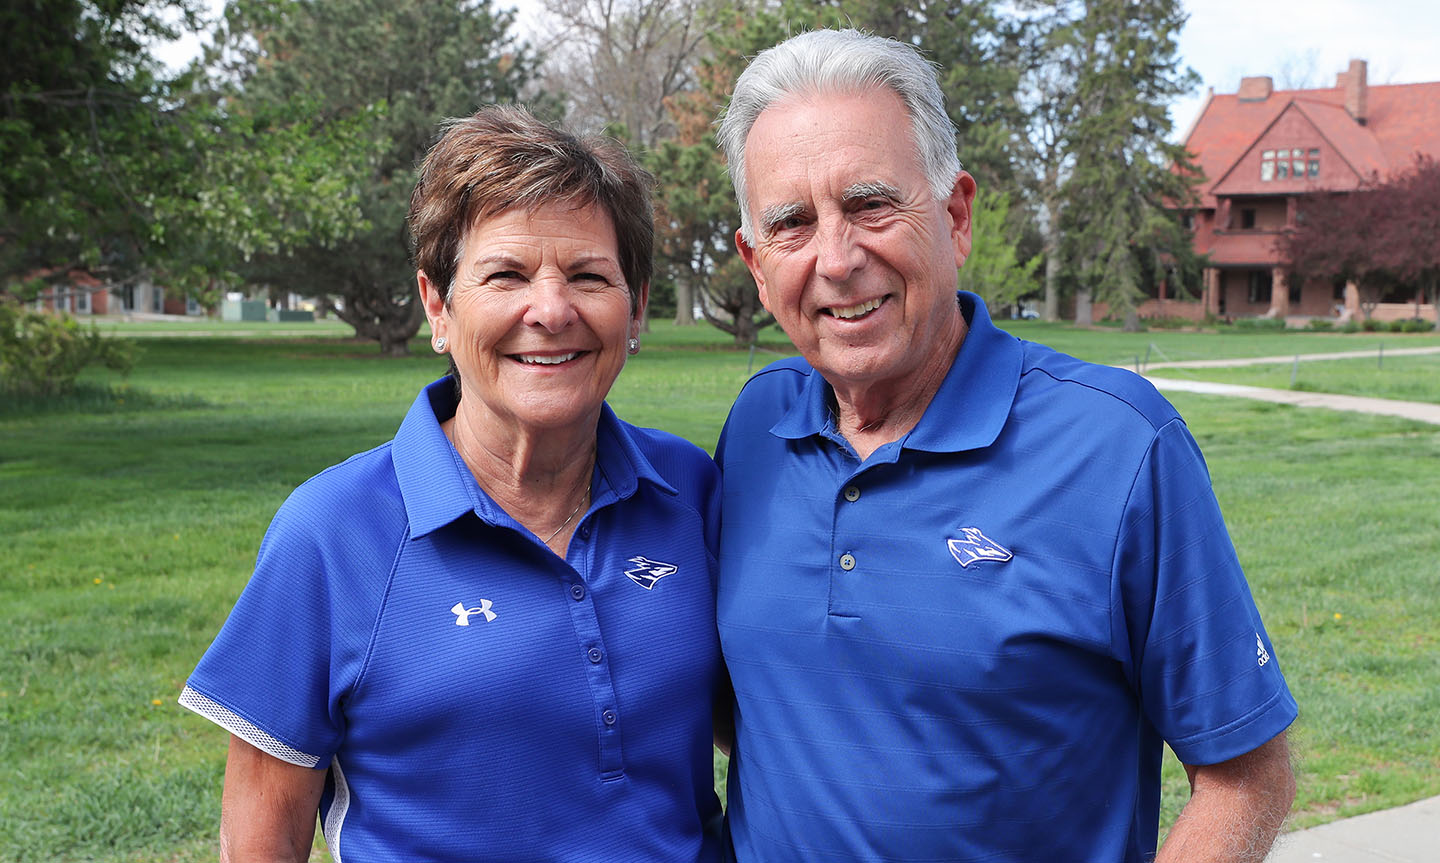 Pete and Jane Kotsiopulos are regular attendees at UNK sports, performing arts and academic events, and they provide financial support for a variety of programs and projects, including the Kotsiopulos Family Scholarship.